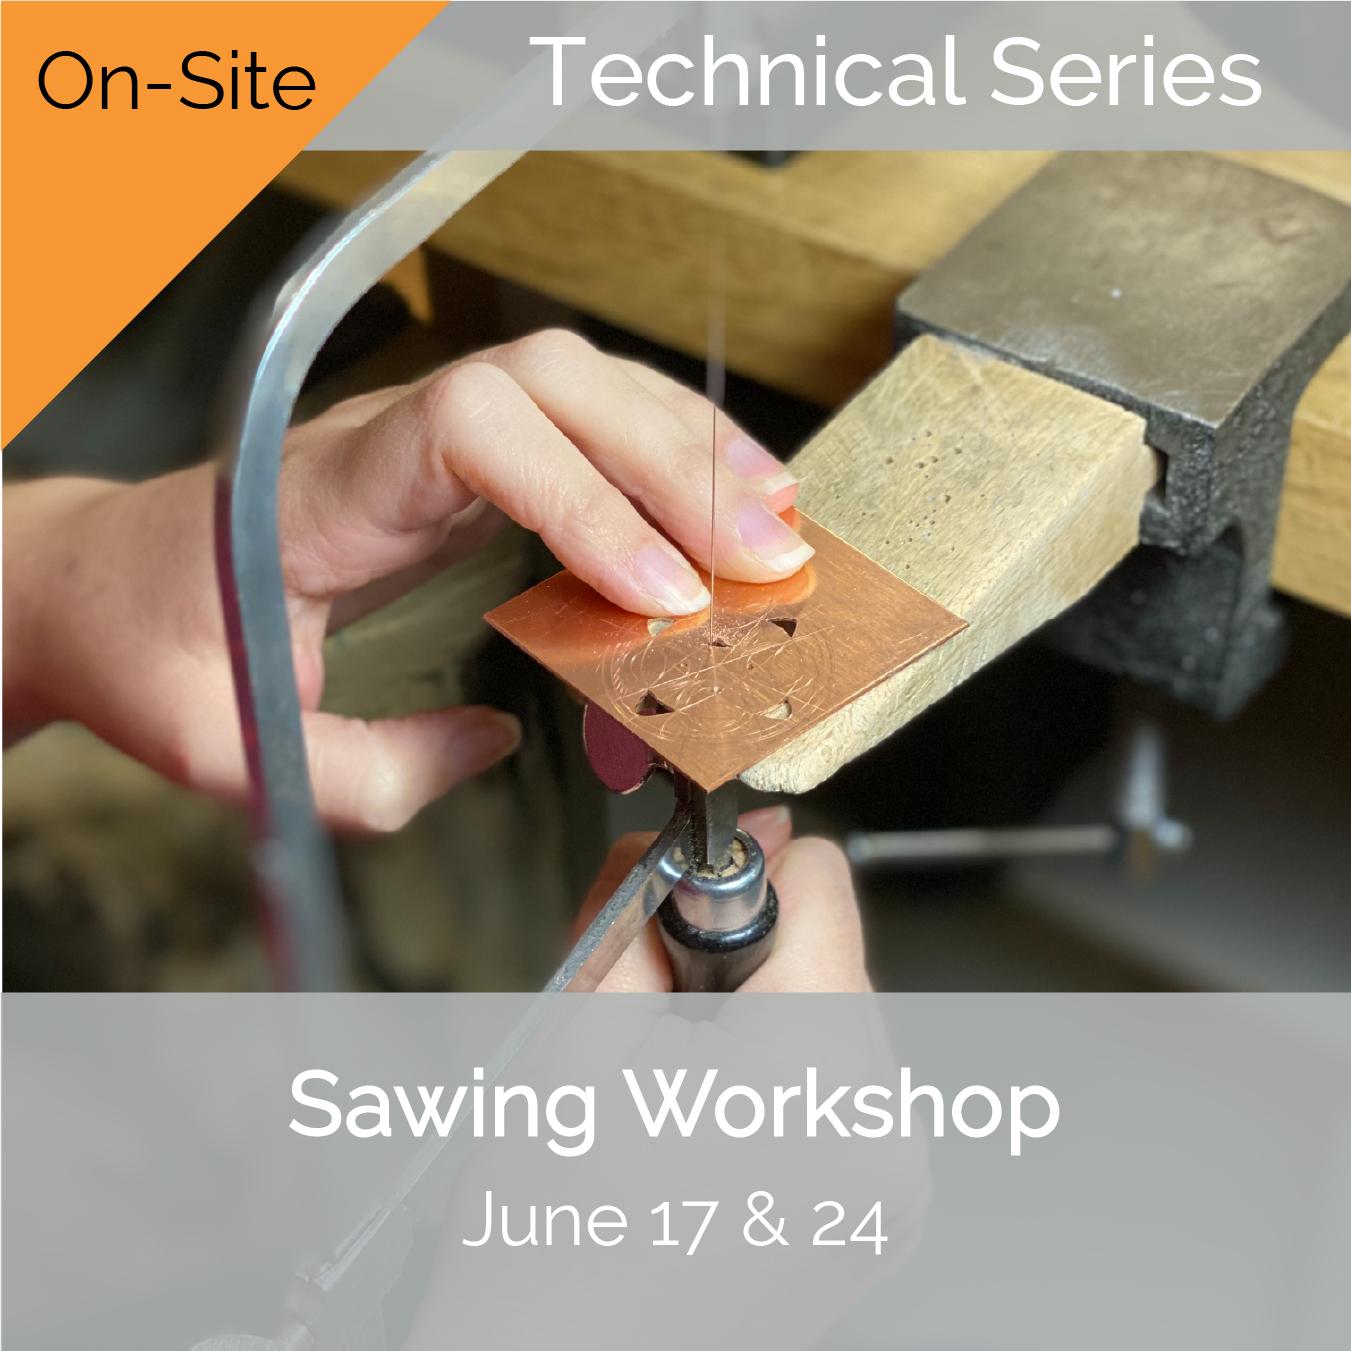 IG - TECH SAWING S2021